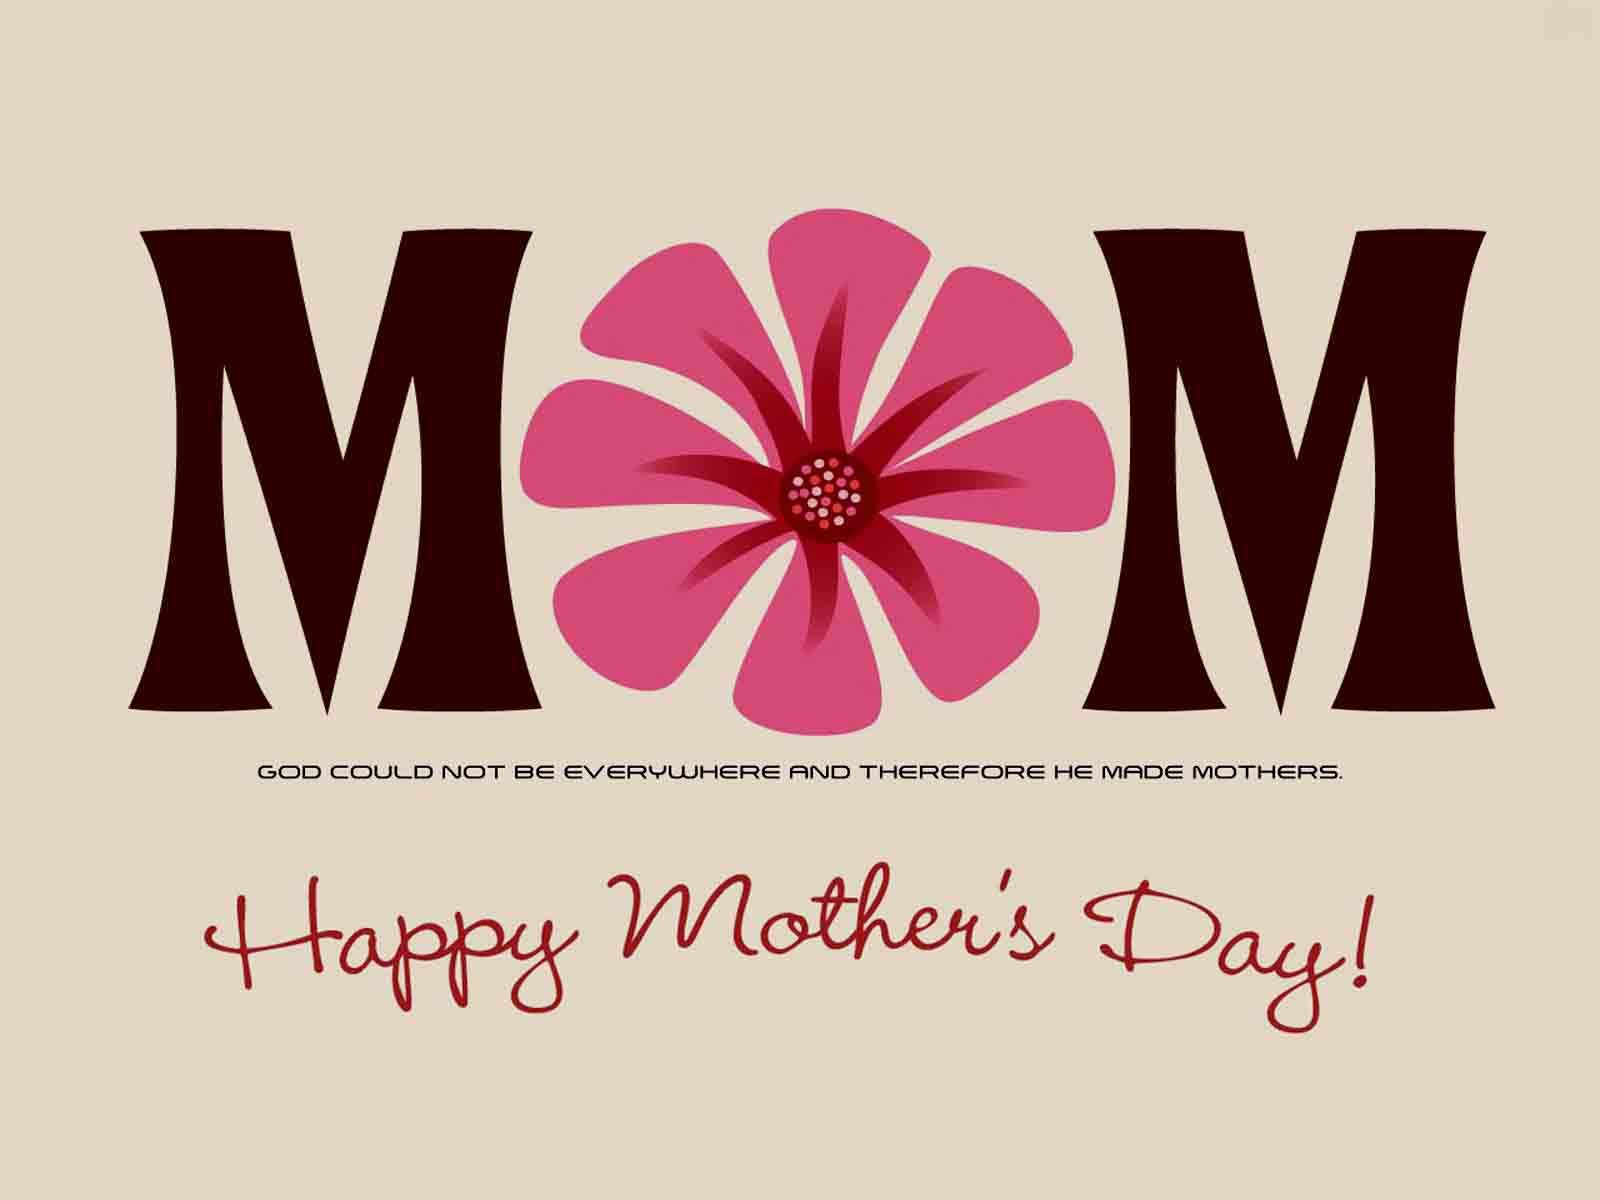 8 Massages For Your Mothers Day We Love